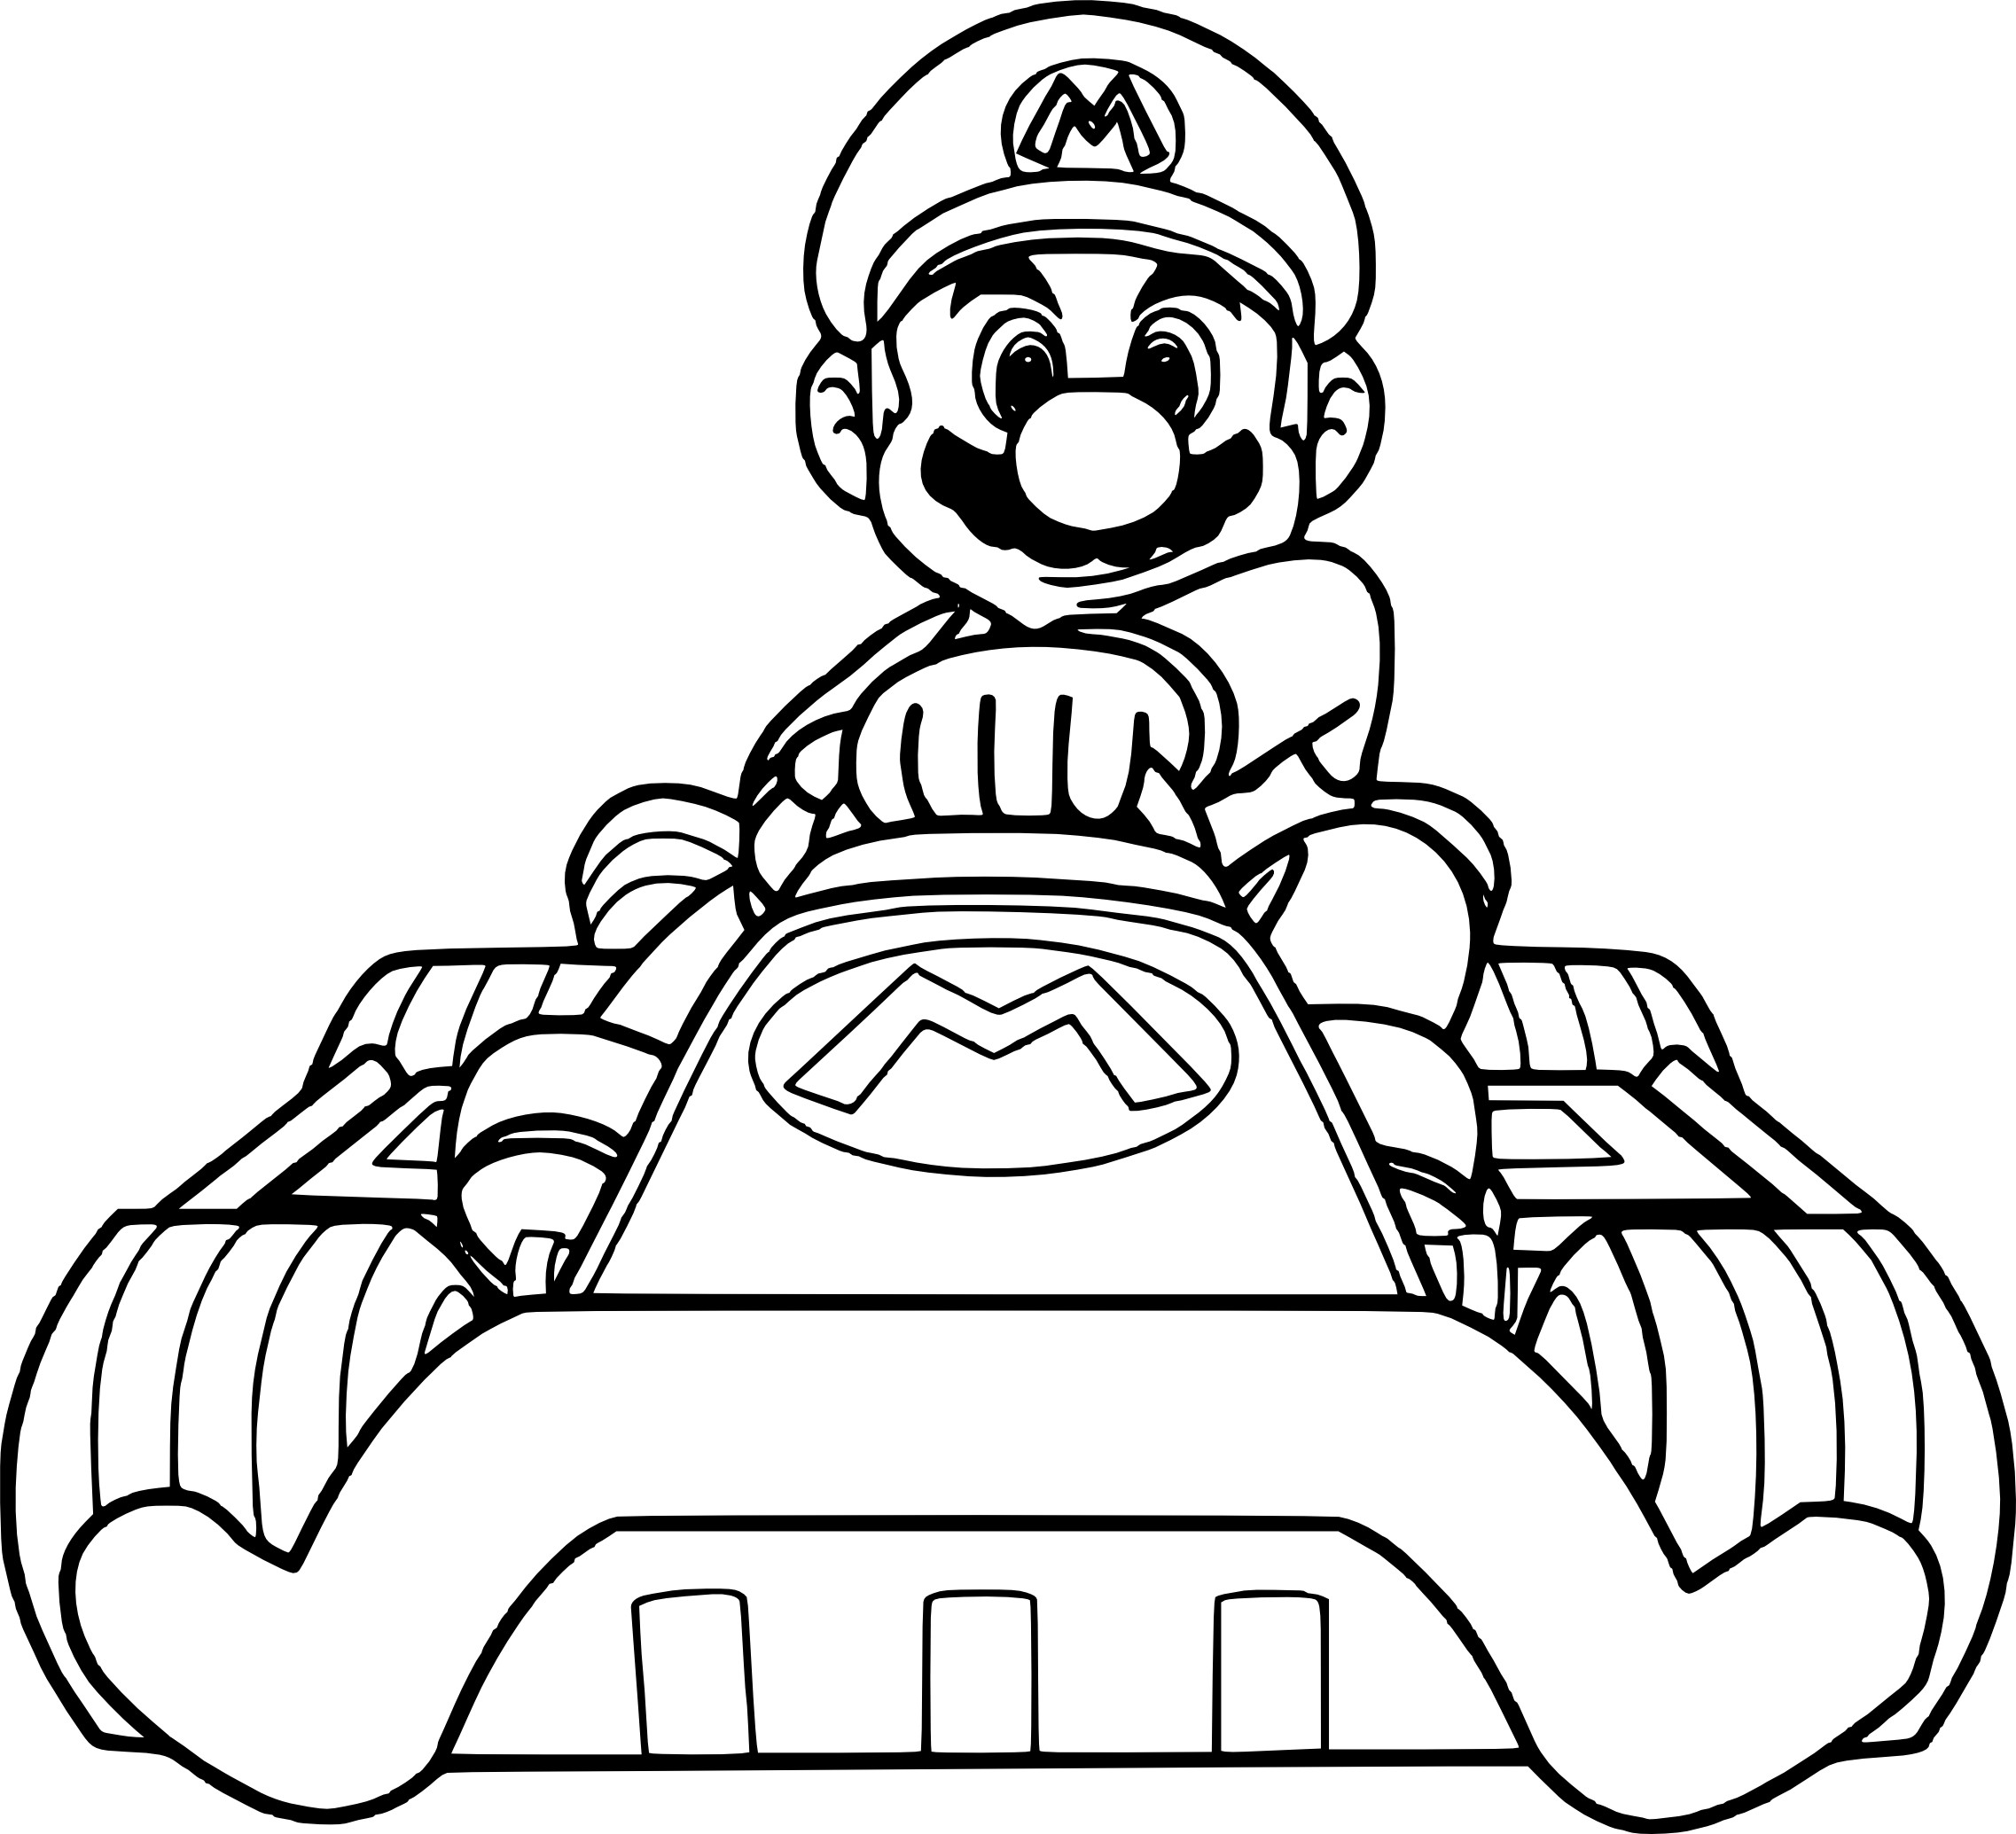 coloriage de mario kart imprimer sur coloriage de com. Black Bedroom Furniture Sets. Home Design Ideas